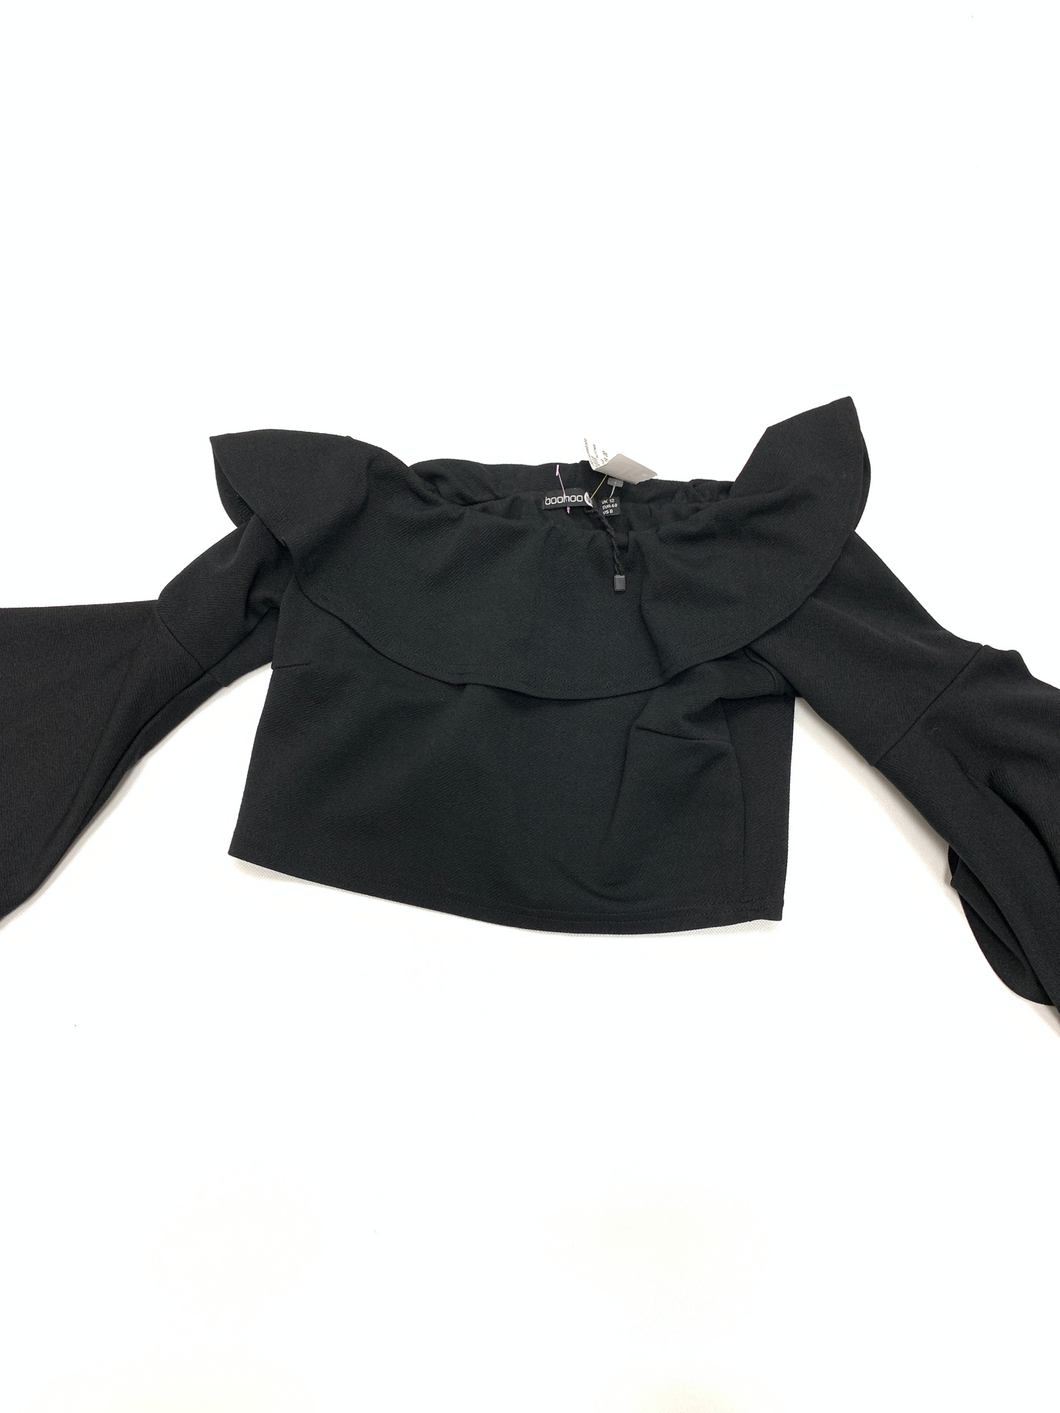 Boohoo Long Sleeve Top Size Medium